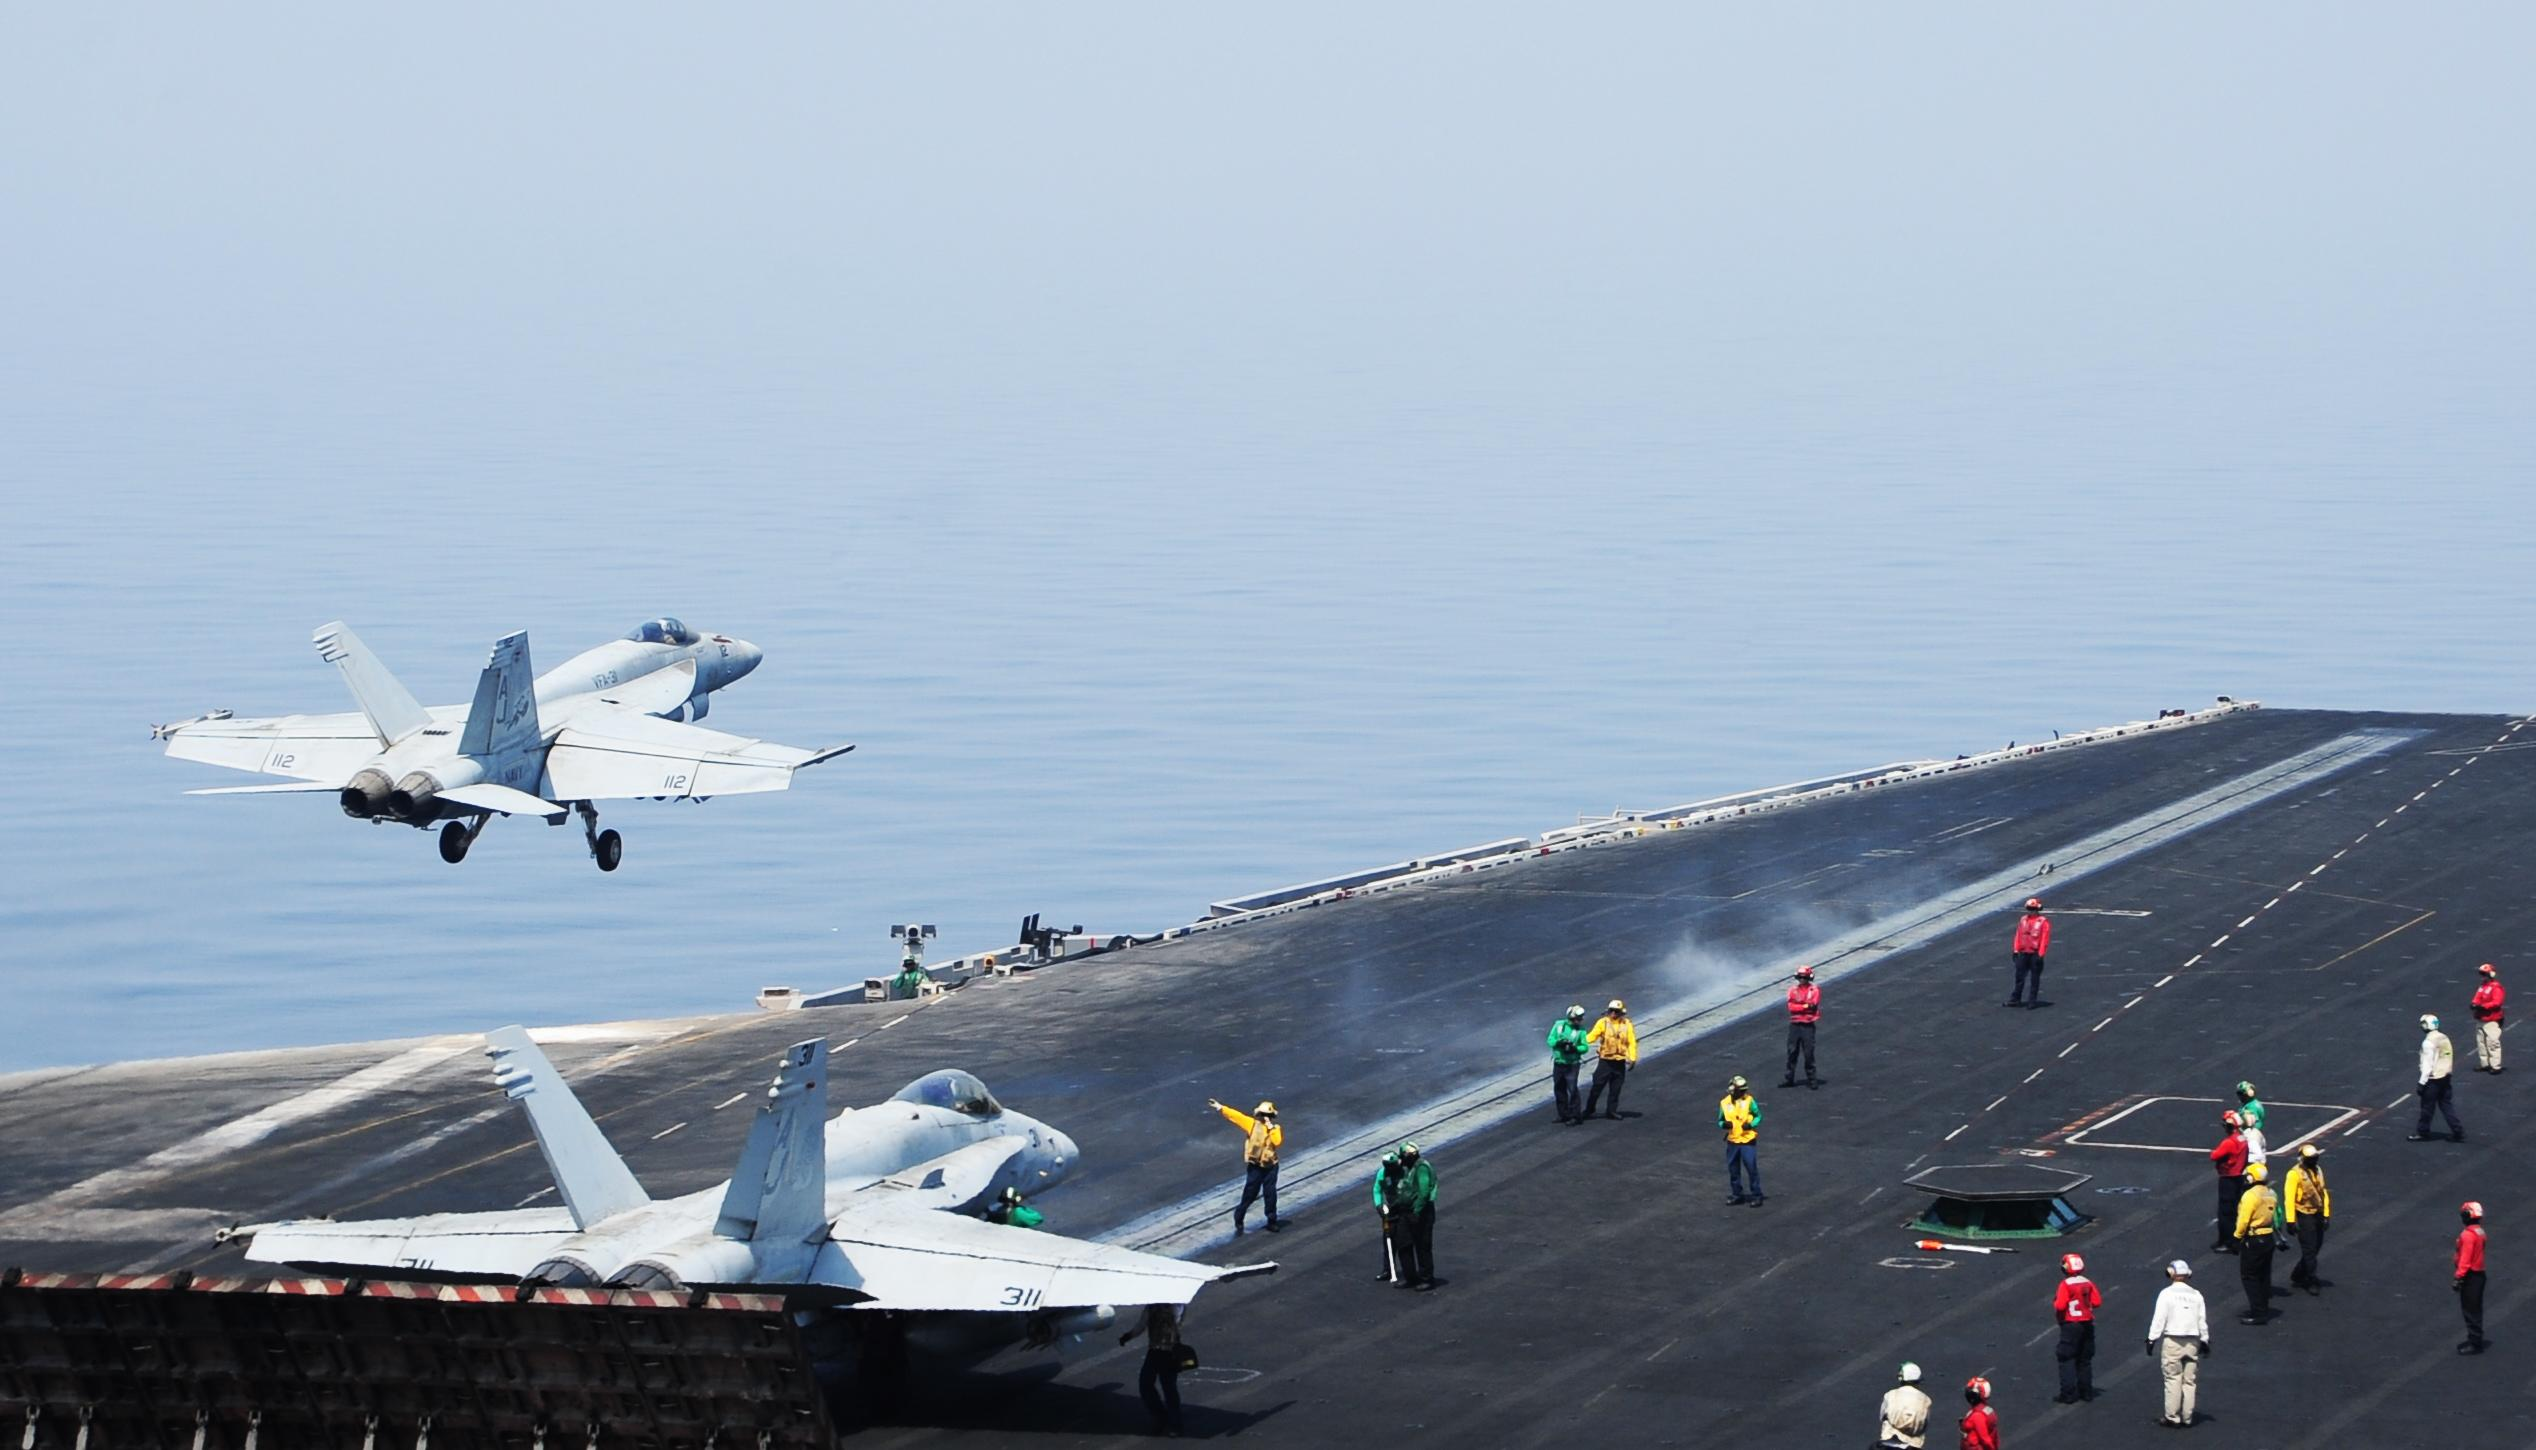 This US Navy photo obtained August 8, 2014 shows sailors directing aircraft, as an F/A-18E Super Hornet takes off from the aircraft carrier USS George H.W. Bush on August 1, 2014 in the Gulf (AFP Photo/Joshua Card)